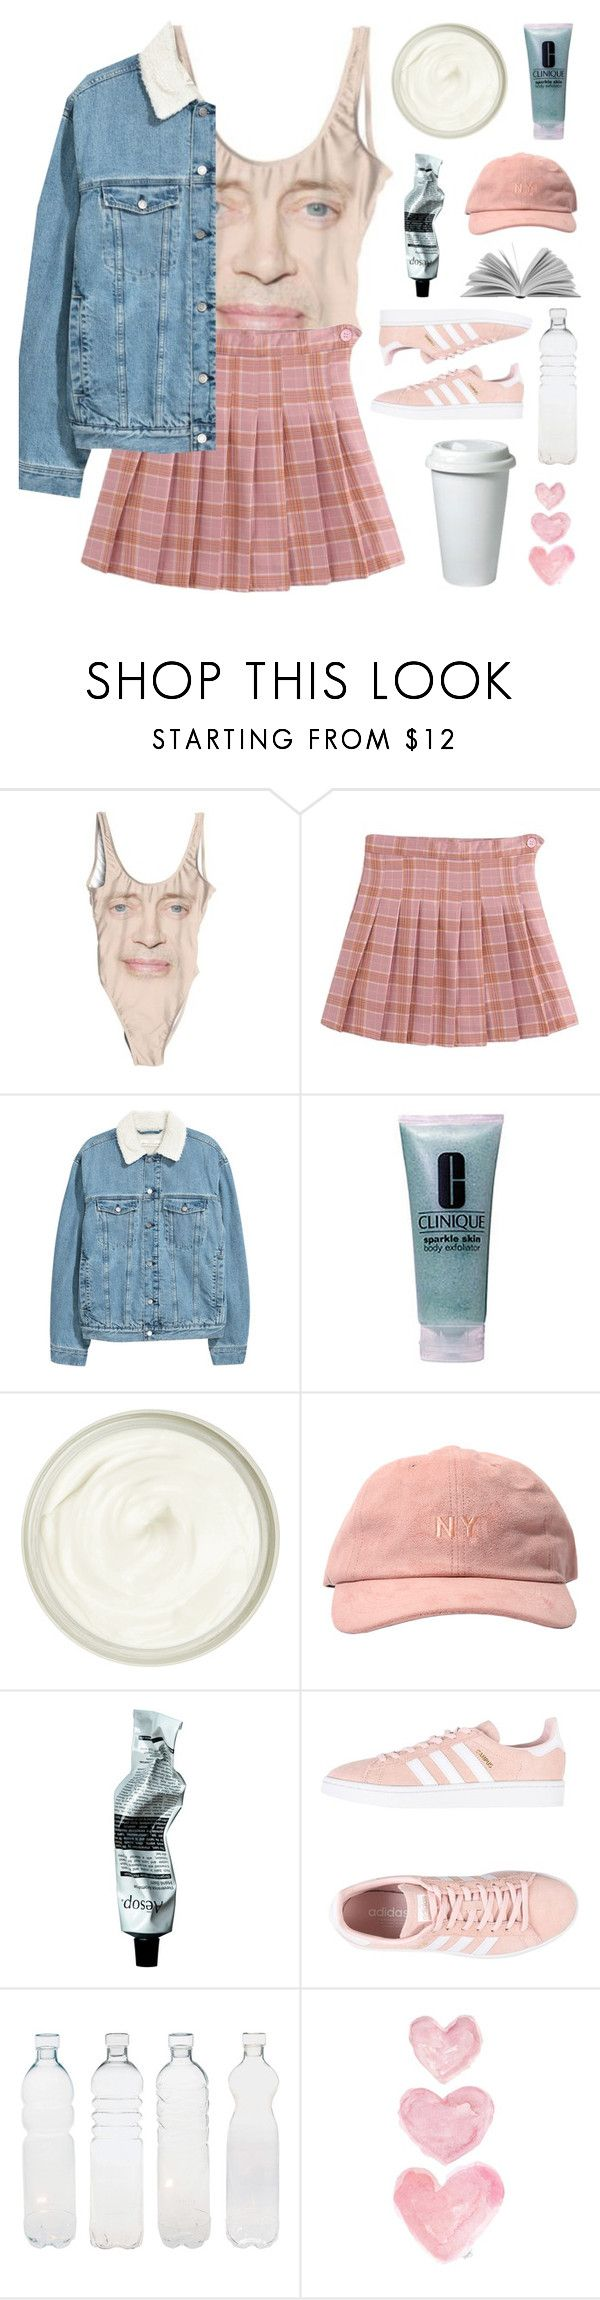 """i'm hollywood actor and teen idol steve buscemi"" by megan-vanwinkle on Polyvore featuring Clinique, Susanne Kaufmann, Aesop, adidas Originals, Seletti, WALL, polyvoreeditorial and powerlook"